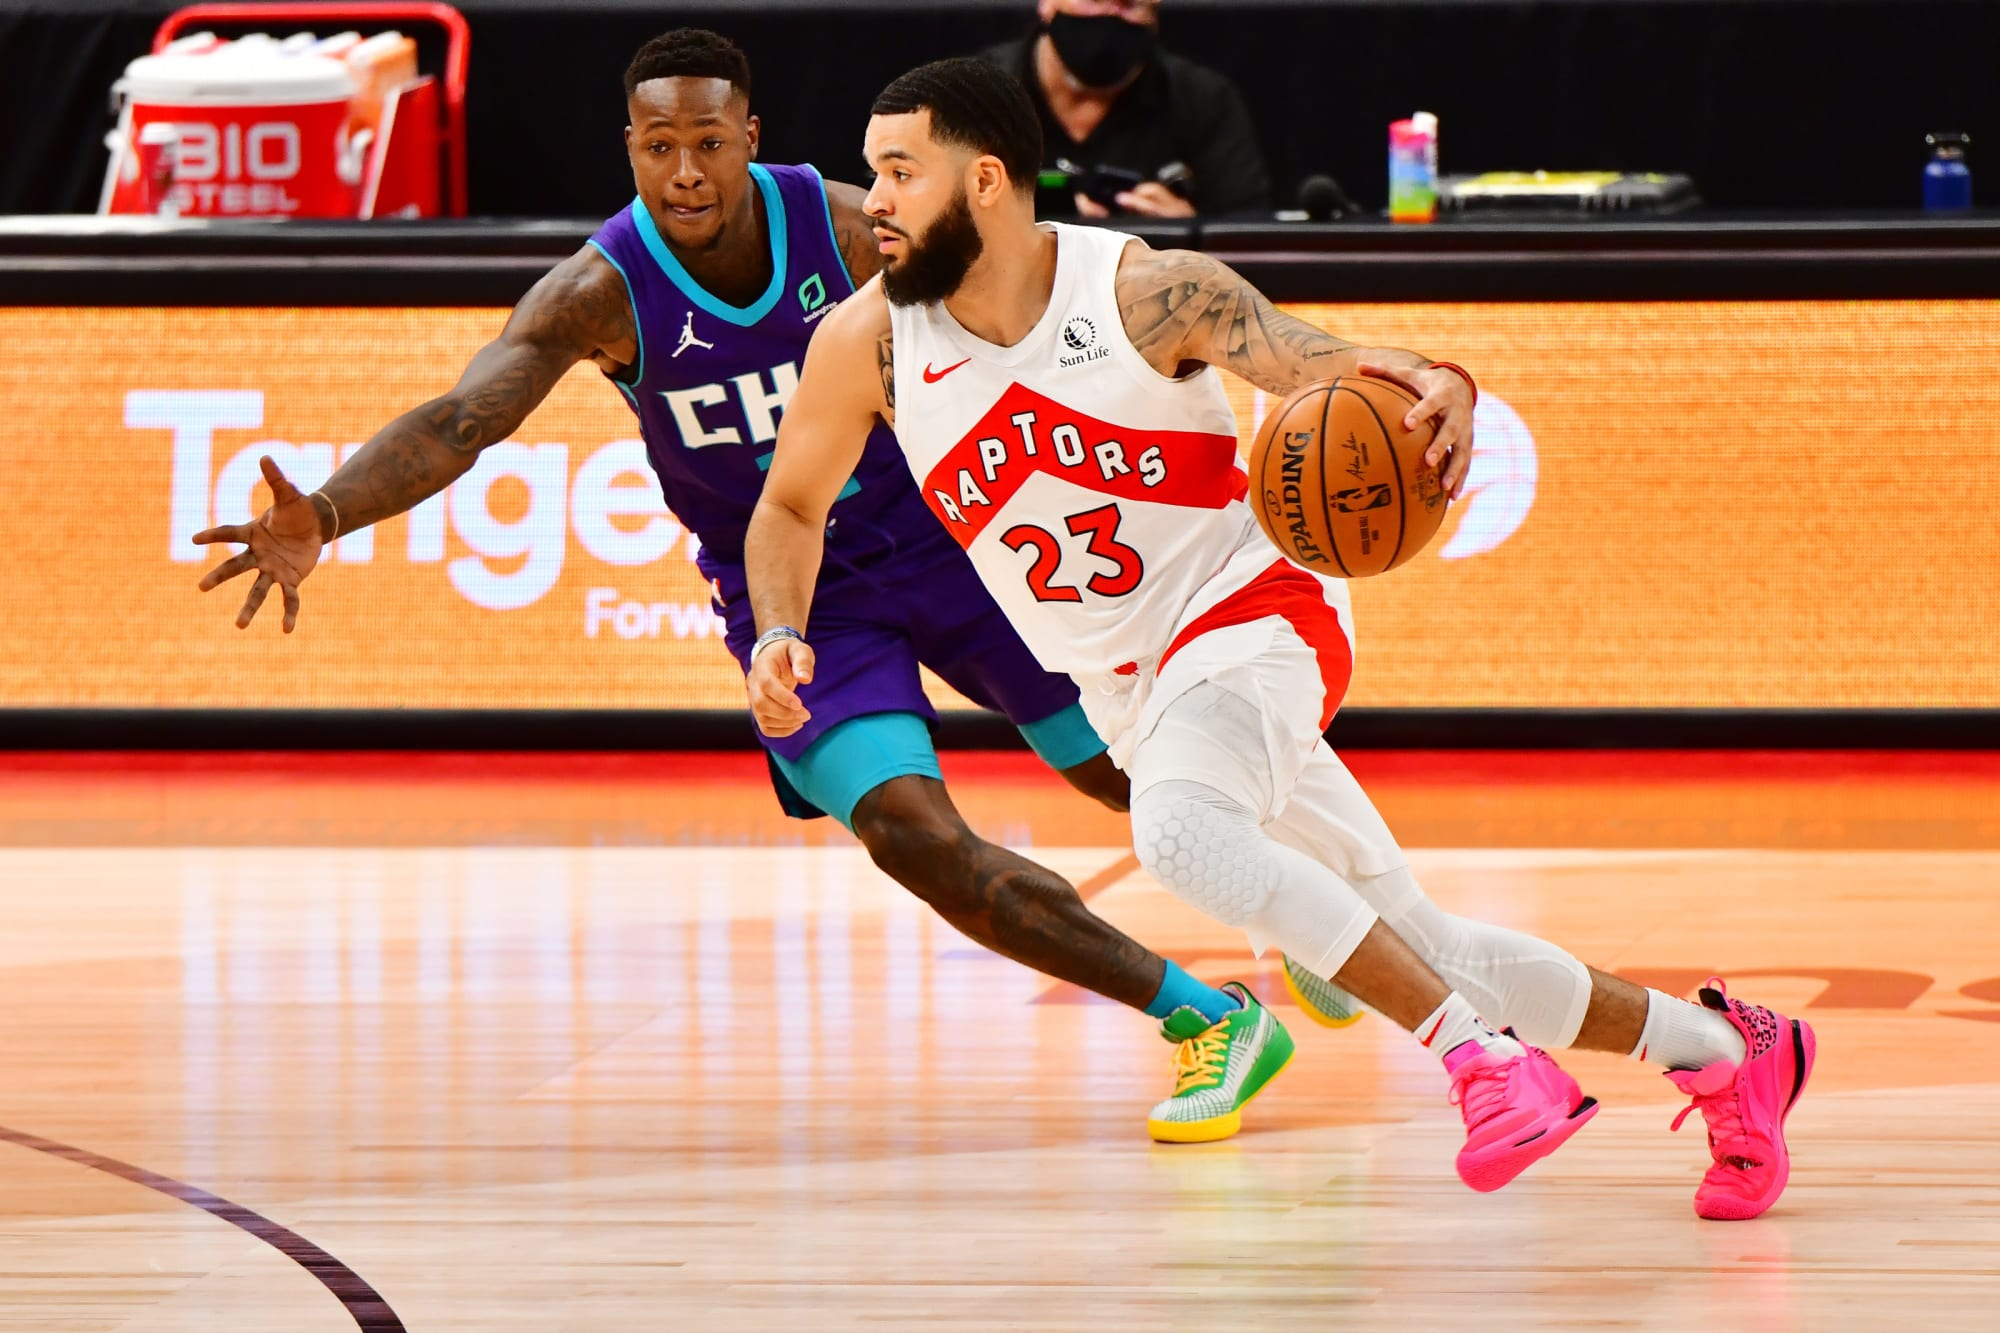 Takeaways from the Toronto Raptors win against the Hornets